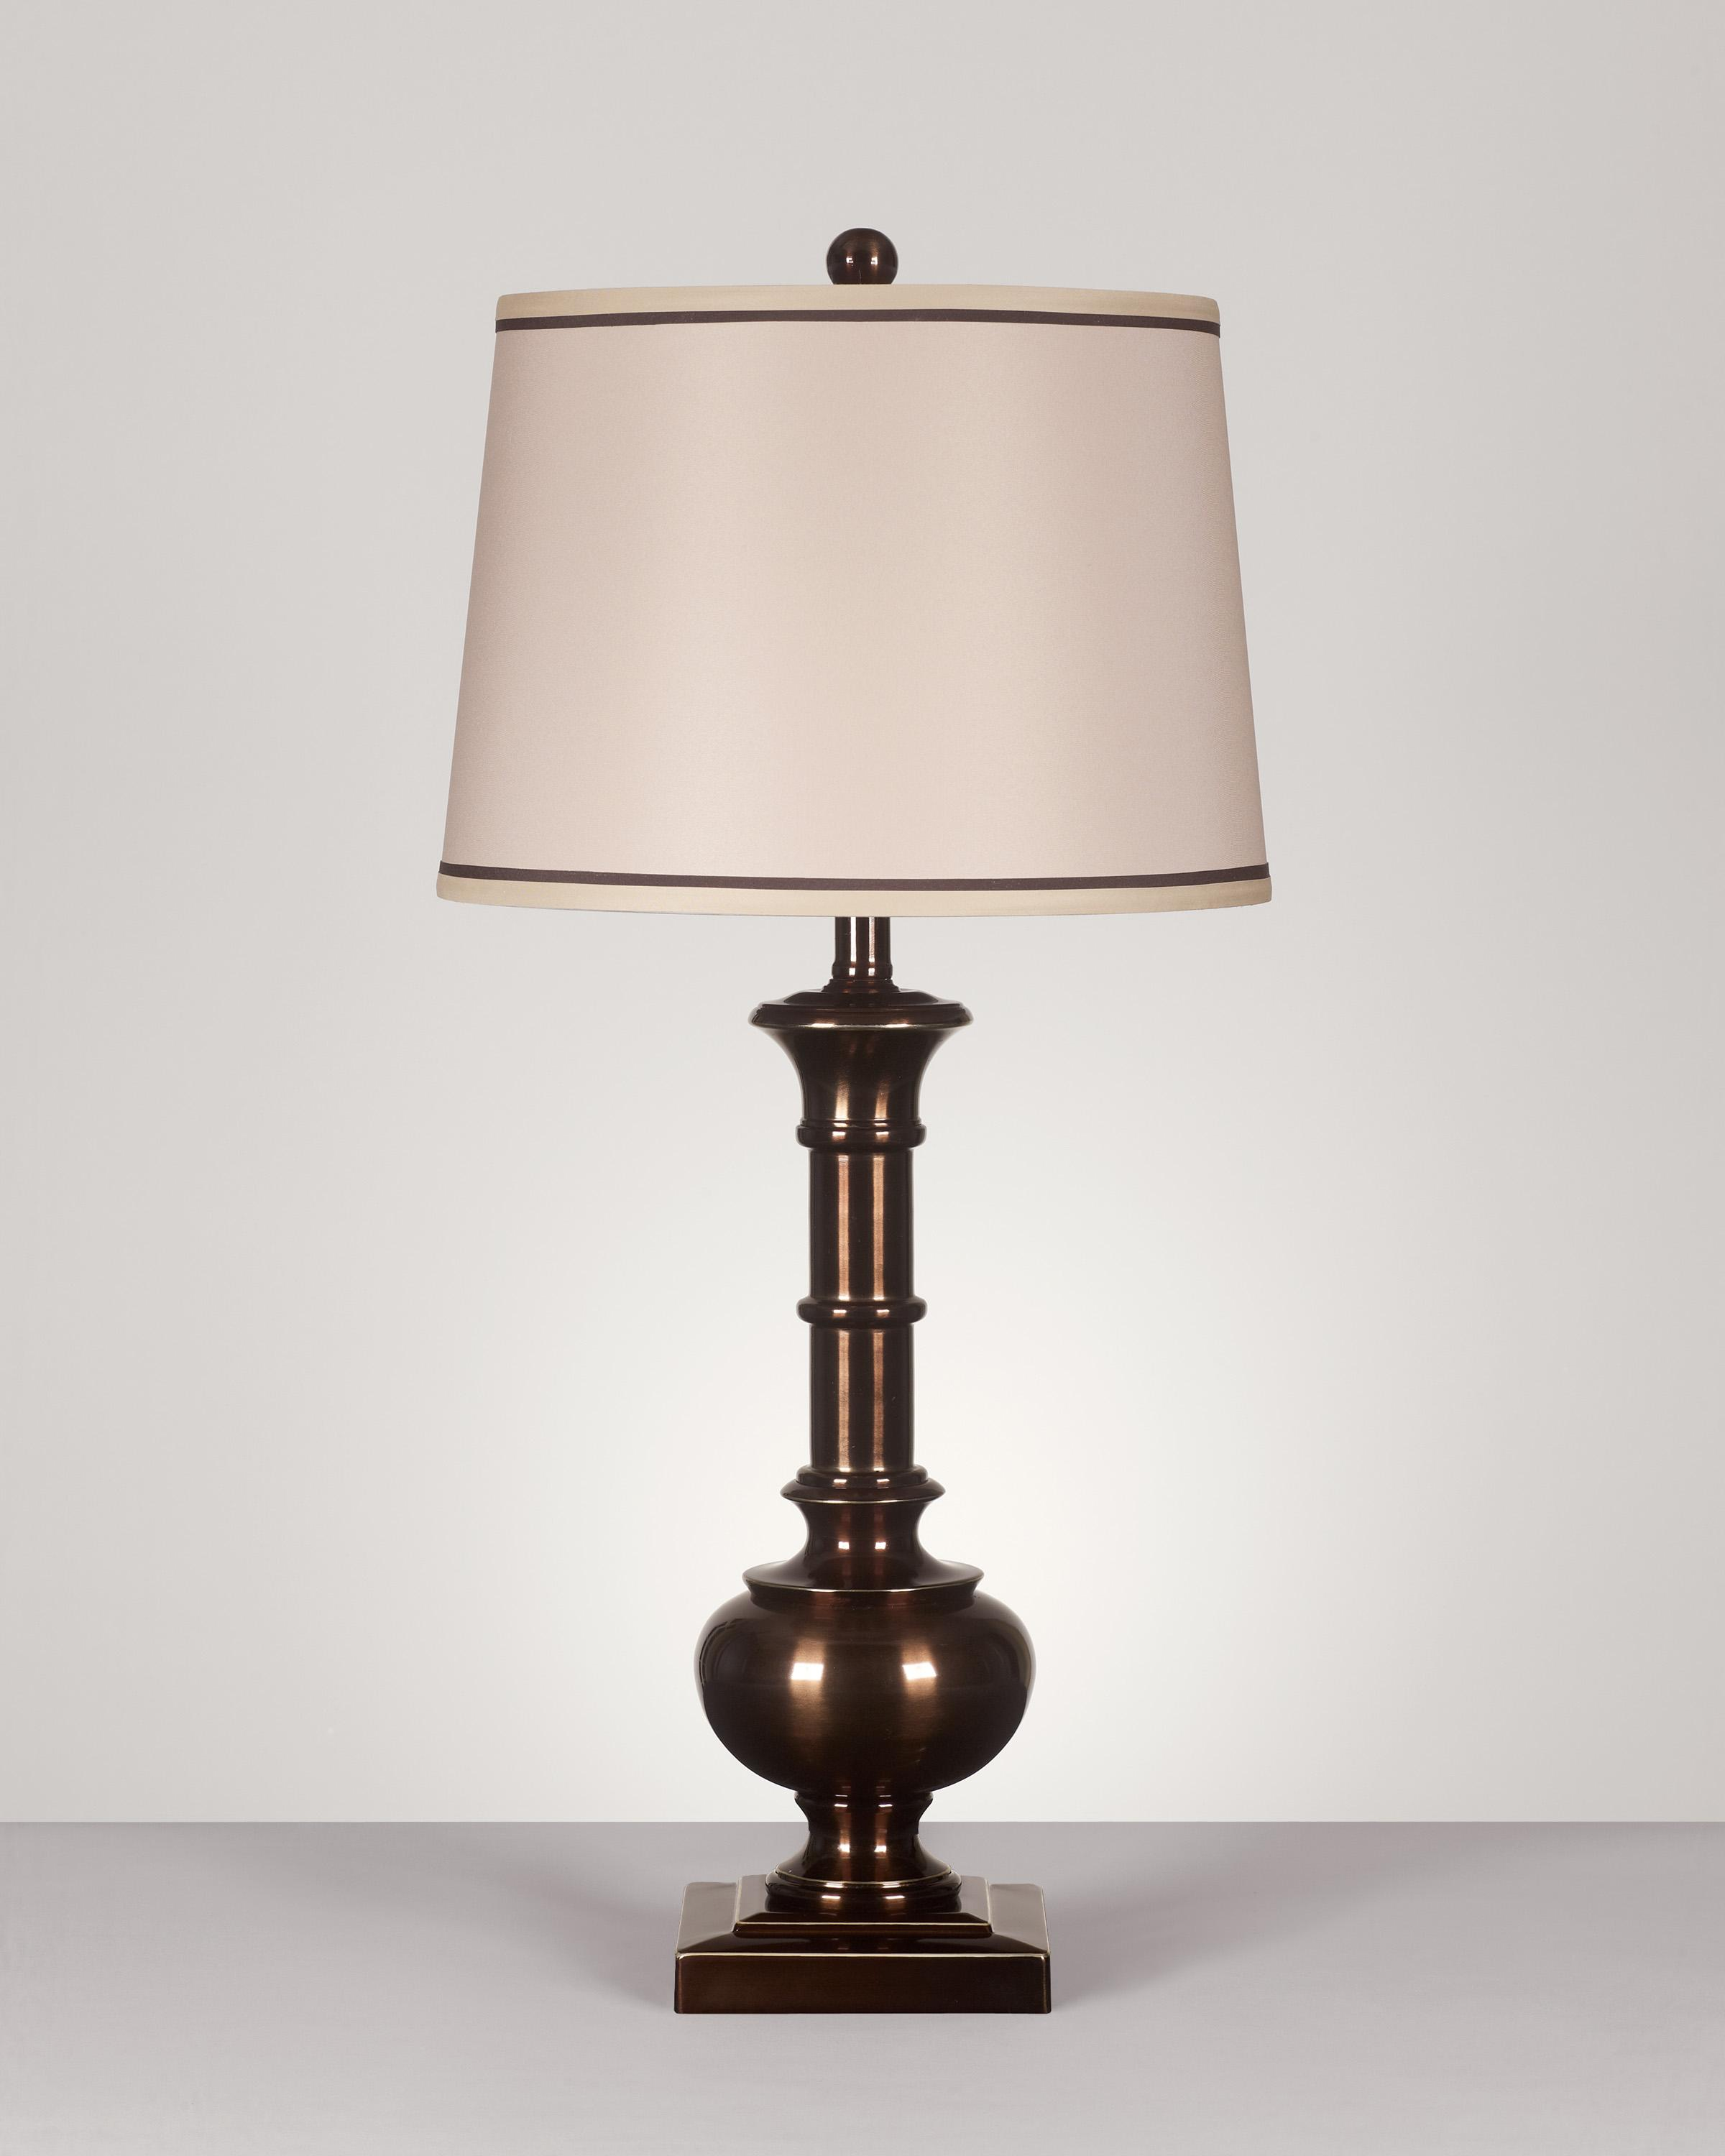 Signature Design by Ashley Lamps - Traditional Classics Set of 2 Oakleigh Metal Table Lamps - Item Number: L207944